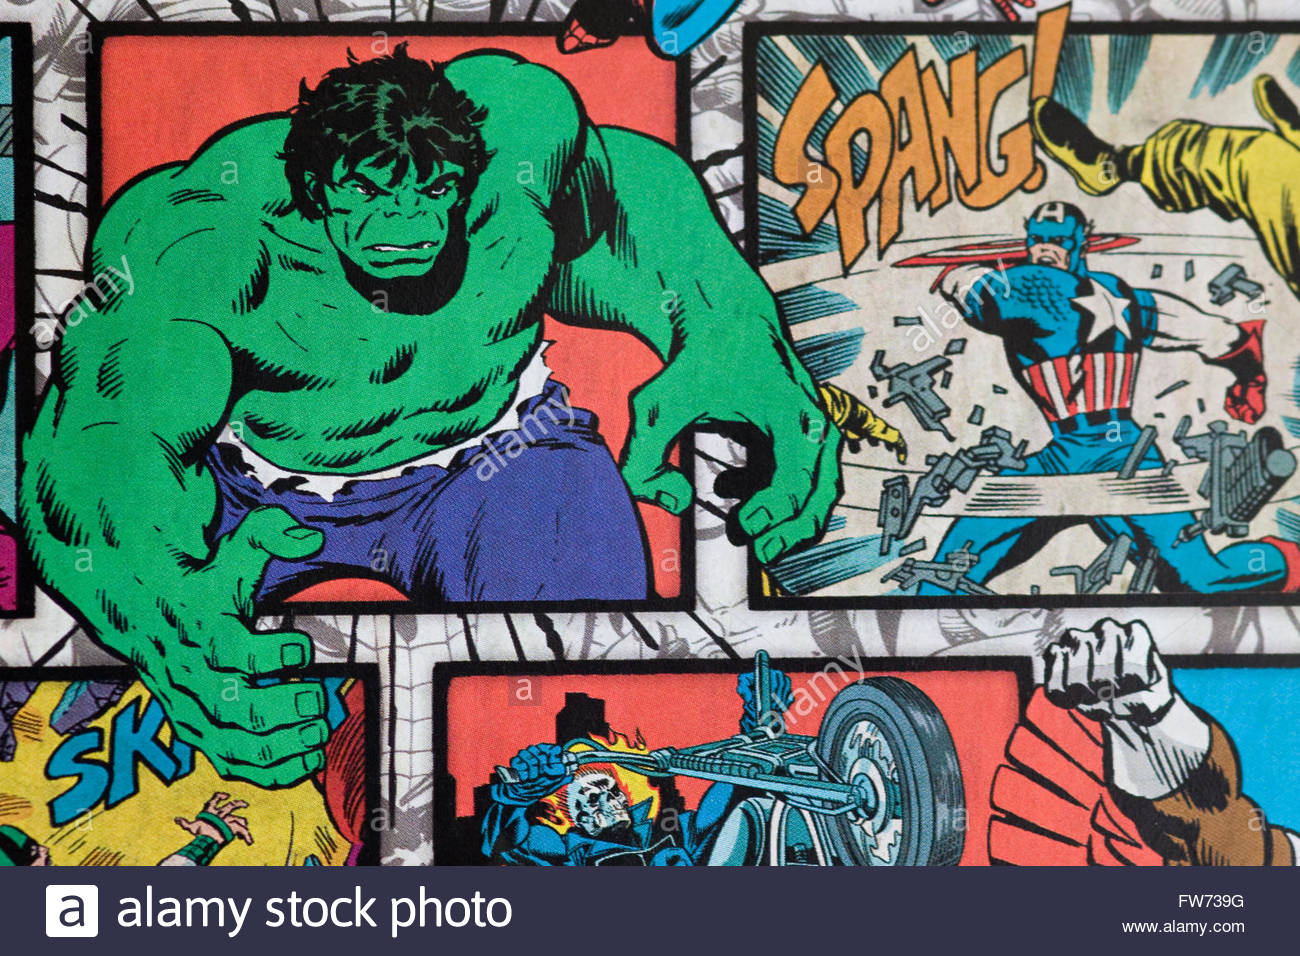 Tapete Comic Marvel Superhelden Tapete Stockfoto Bild 101574524 Alamy